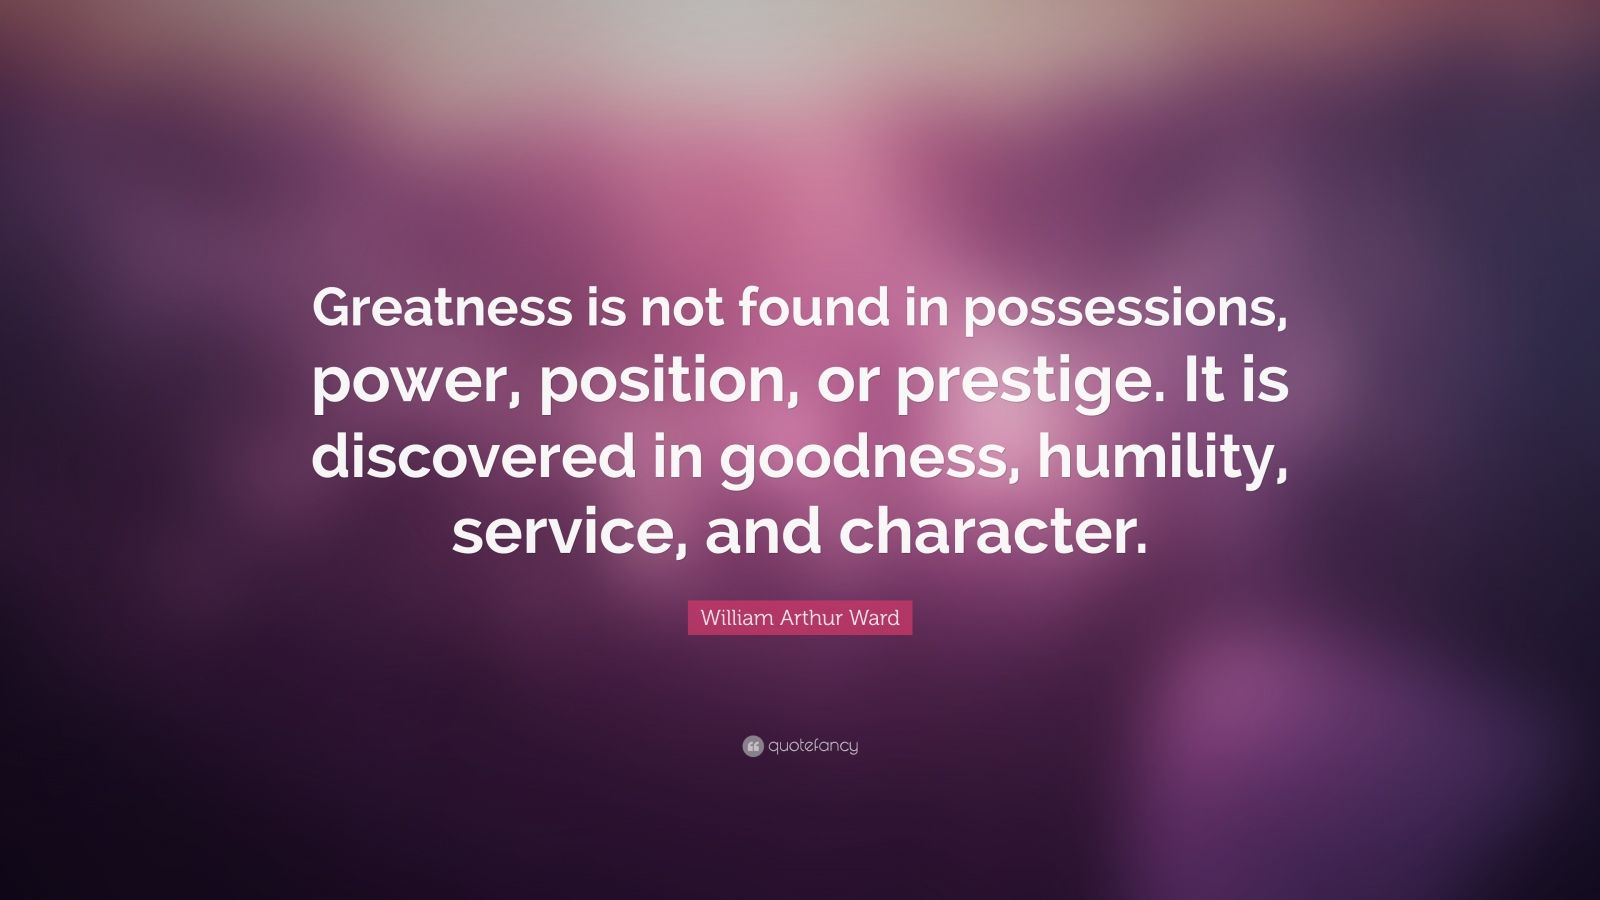 """William Arthur Ward Quote: """"Greatness is not found in possessions, power, position, or prestige. It is discovered in goodness, humility, service, and character."""""""